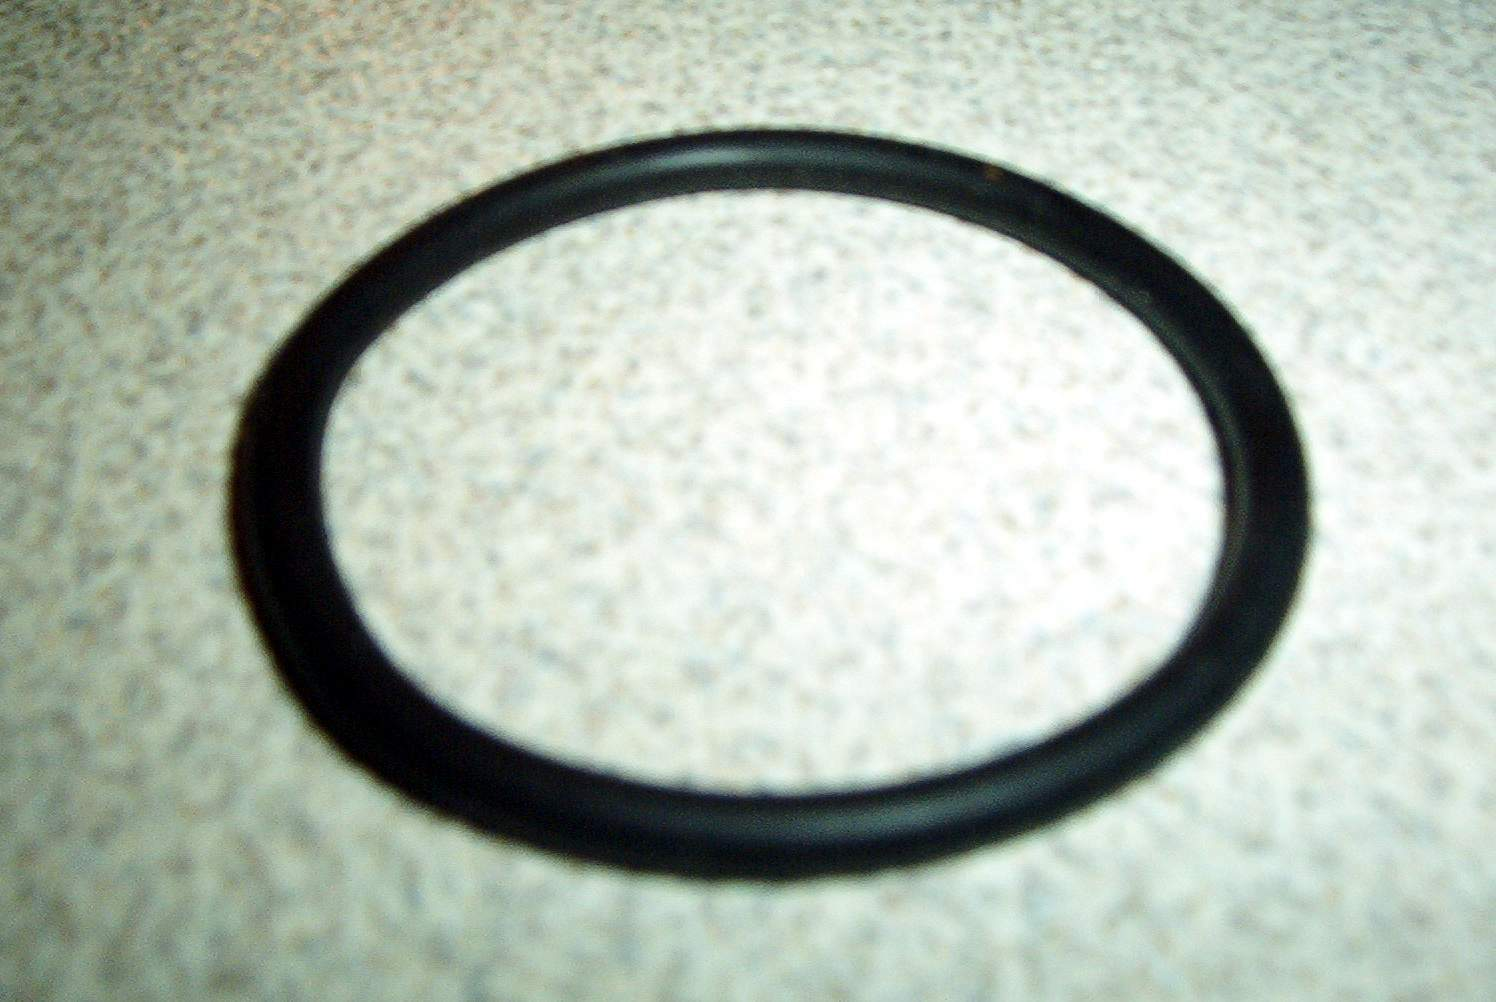 Kirby Emtor O-ring Round Rubber Gasket for 516 - D80 1cr- Legend II ...